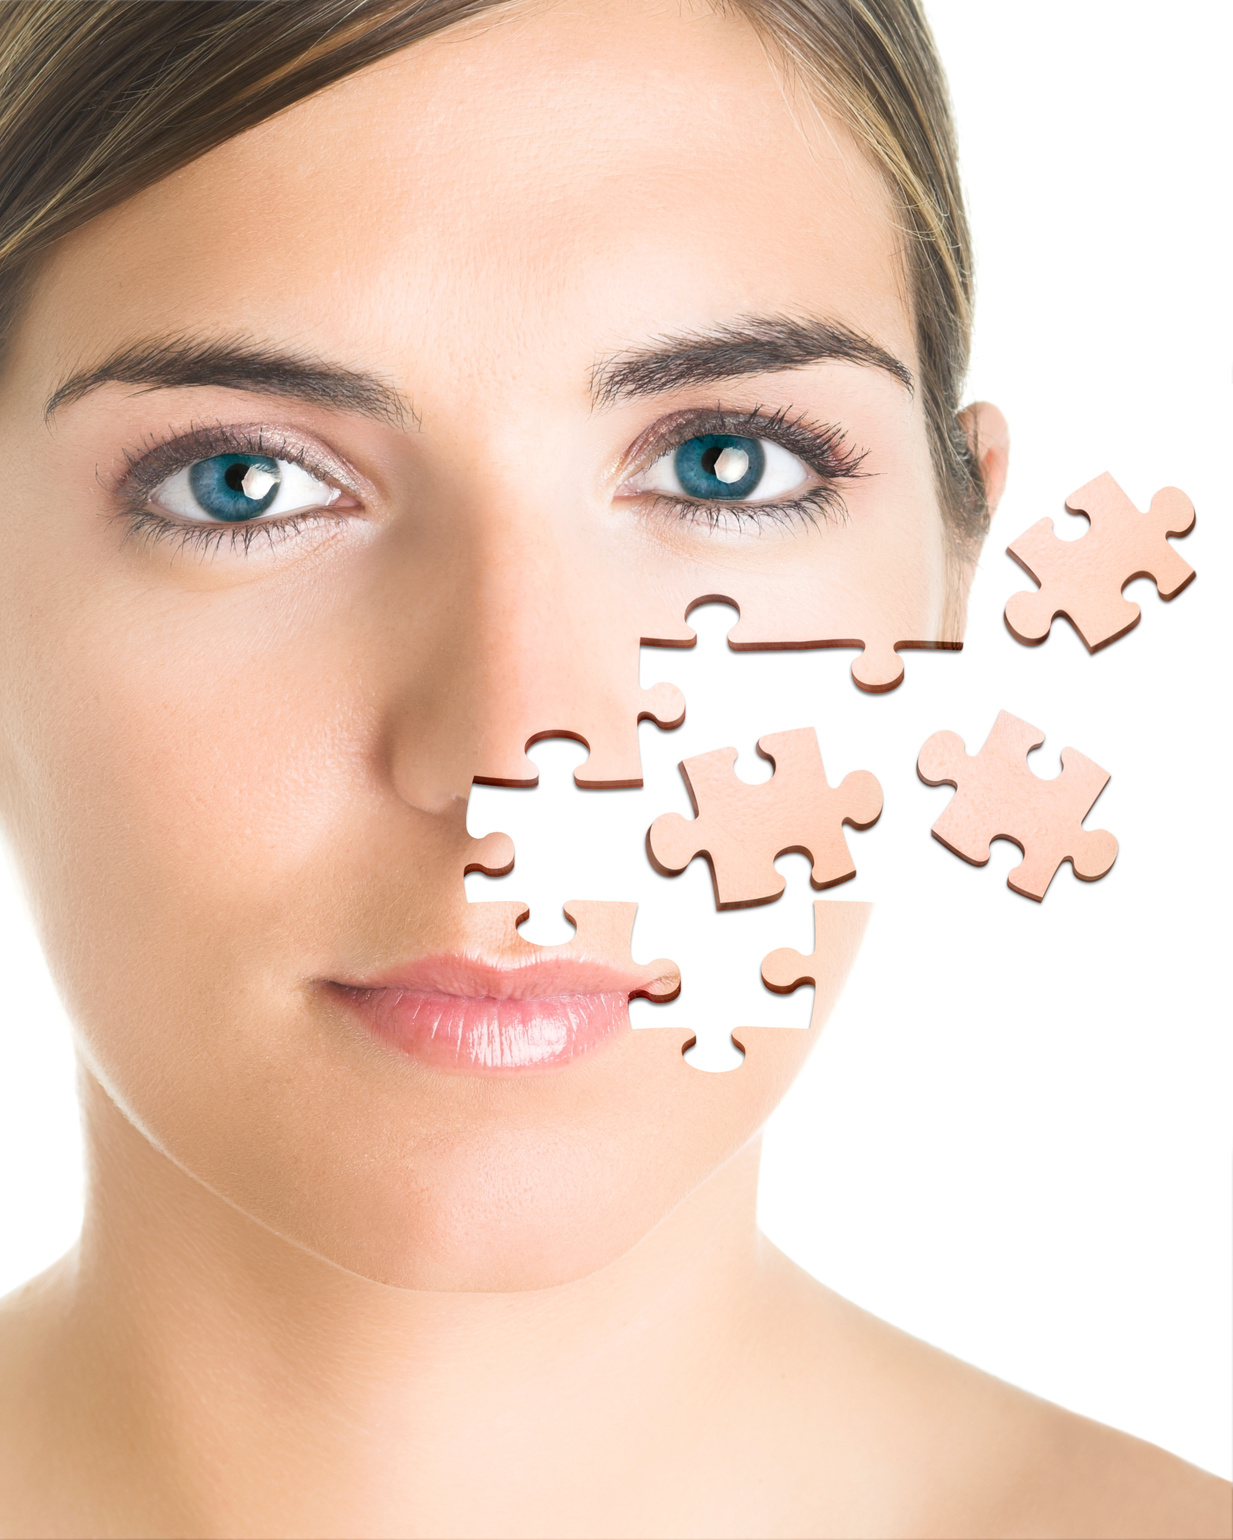 top most recorded countries the most plastic surgeries puzzle face